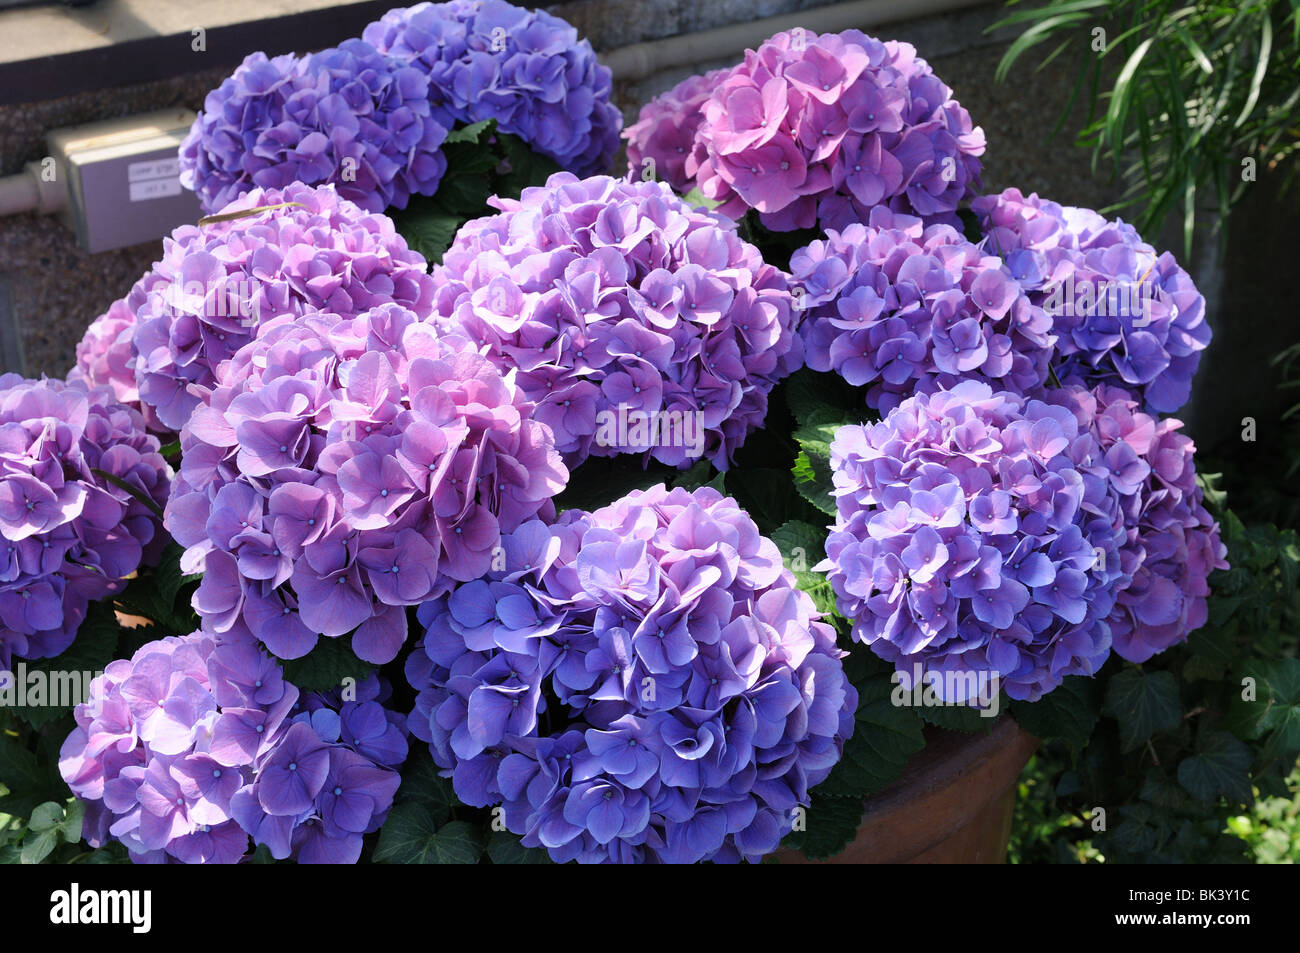 Hydrangeas blooming in Longwood Gardens, Kennett Square, Pennsylvania. - Stock Image